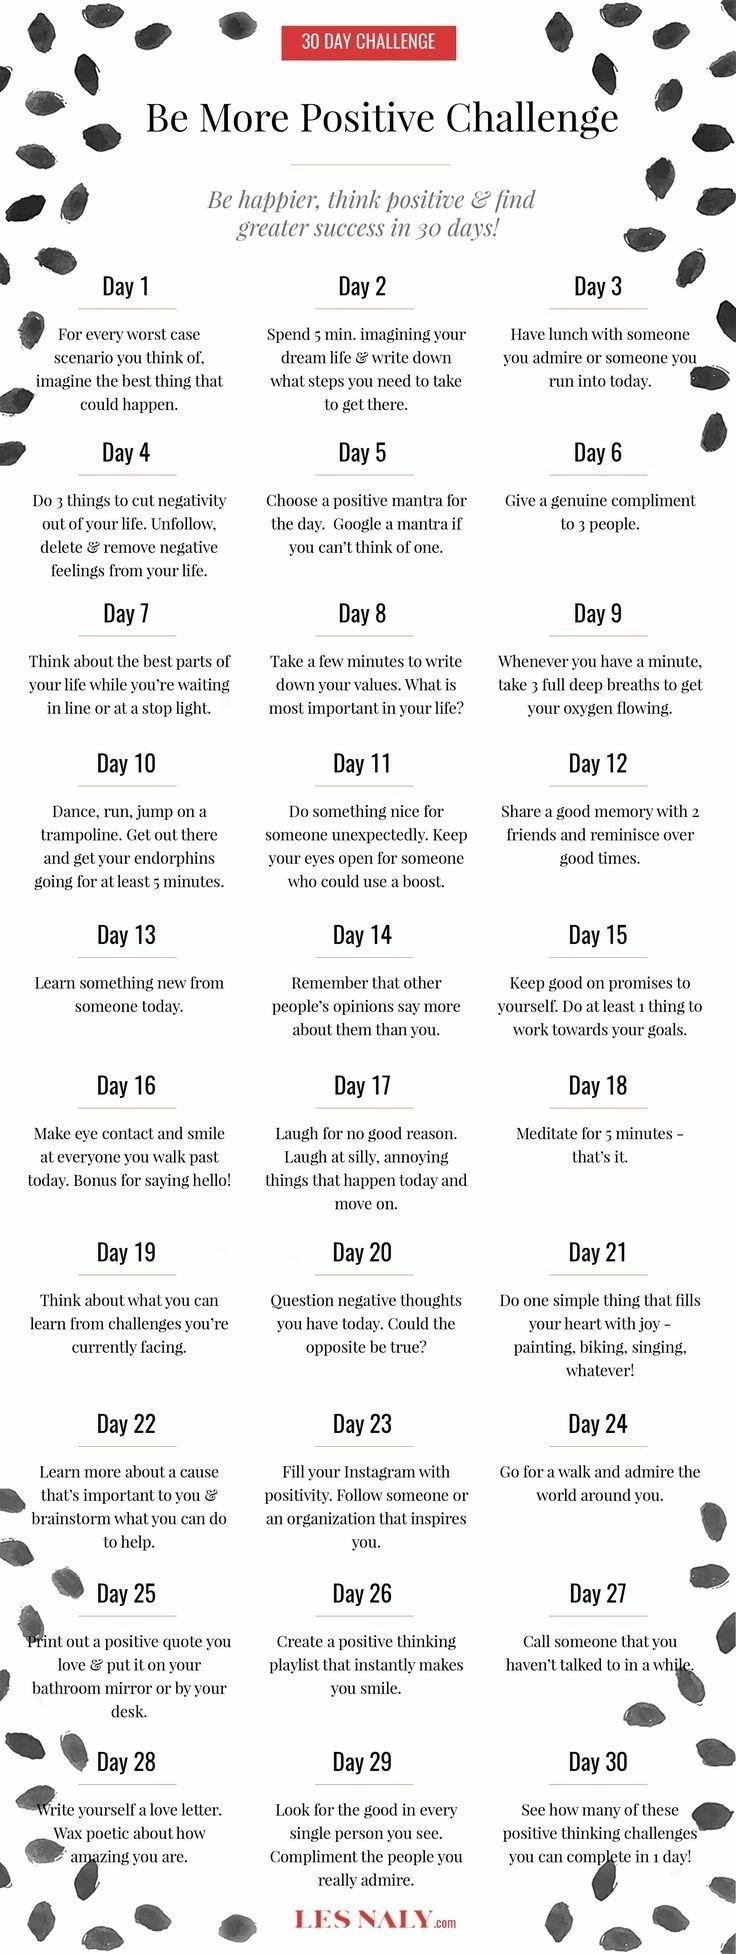 56 Lists To Make When You Are Feeling Down + Workbook